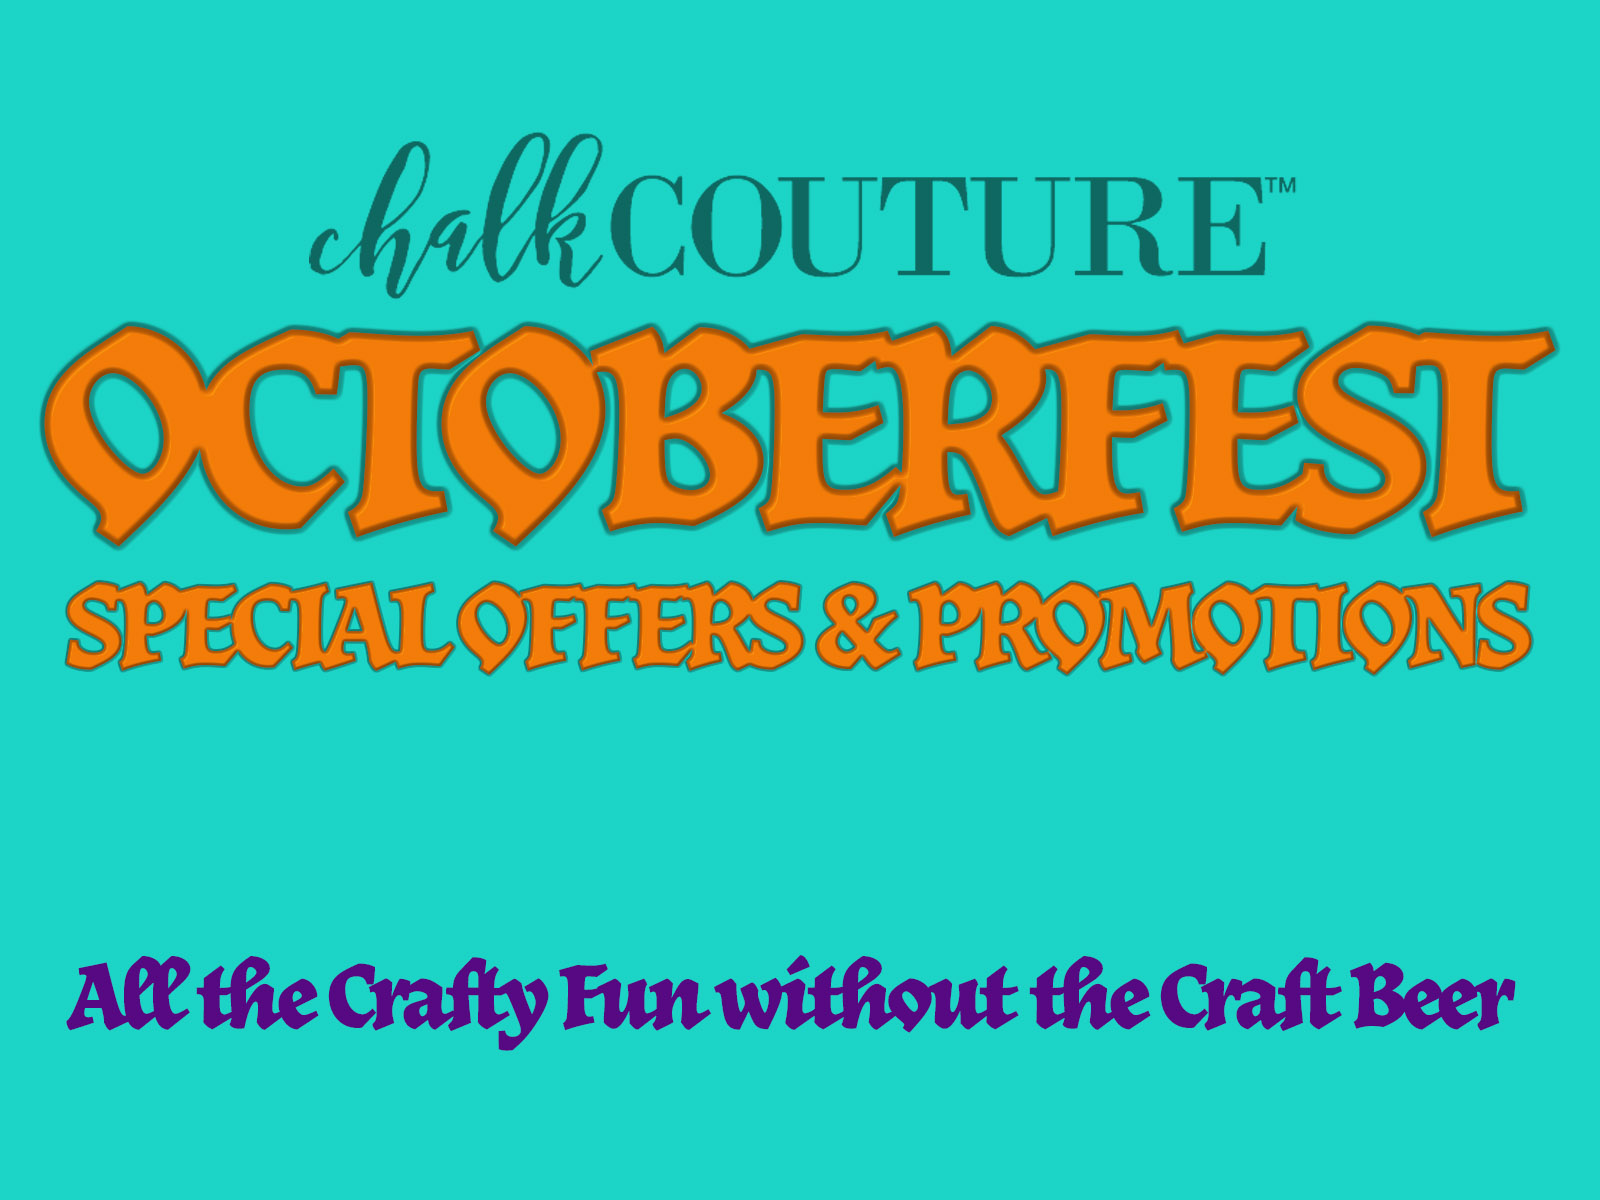 It's Octoberfest at Chalk Couture